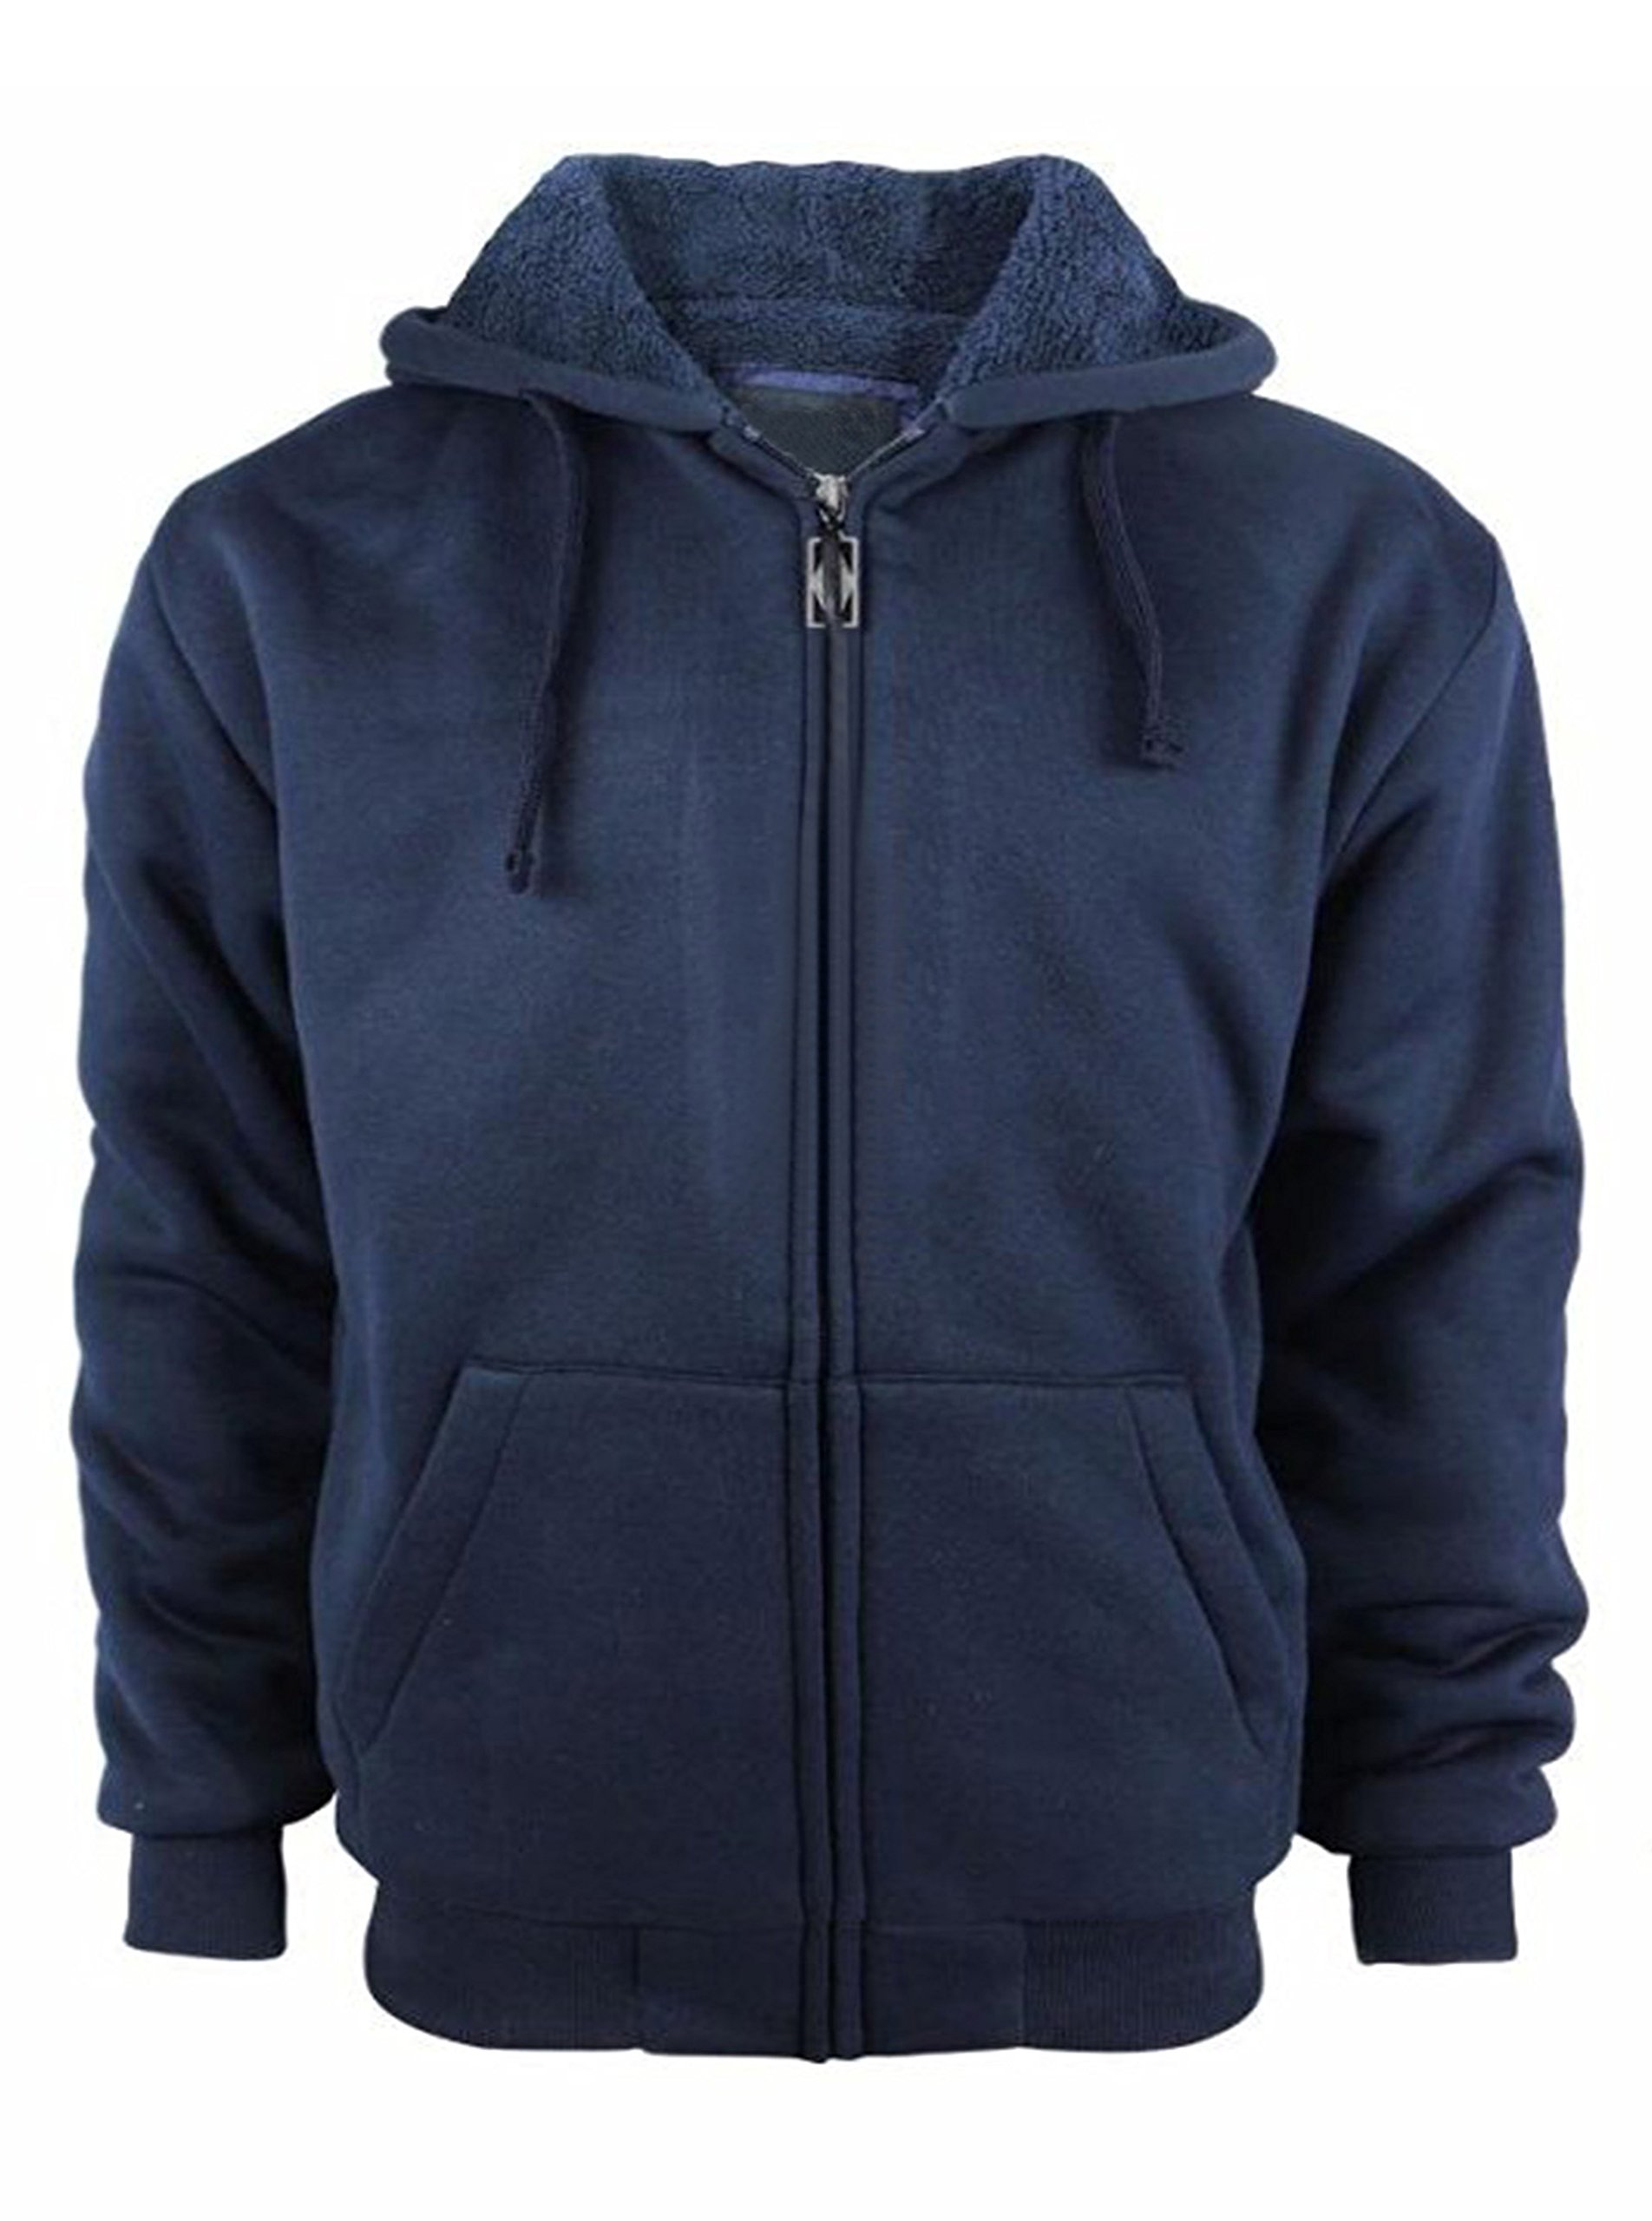 Mens Casual Fashion Active Jersey Slim Fit Hooded Zip Front Jacket Navy Medium by GEEK LIGHTING